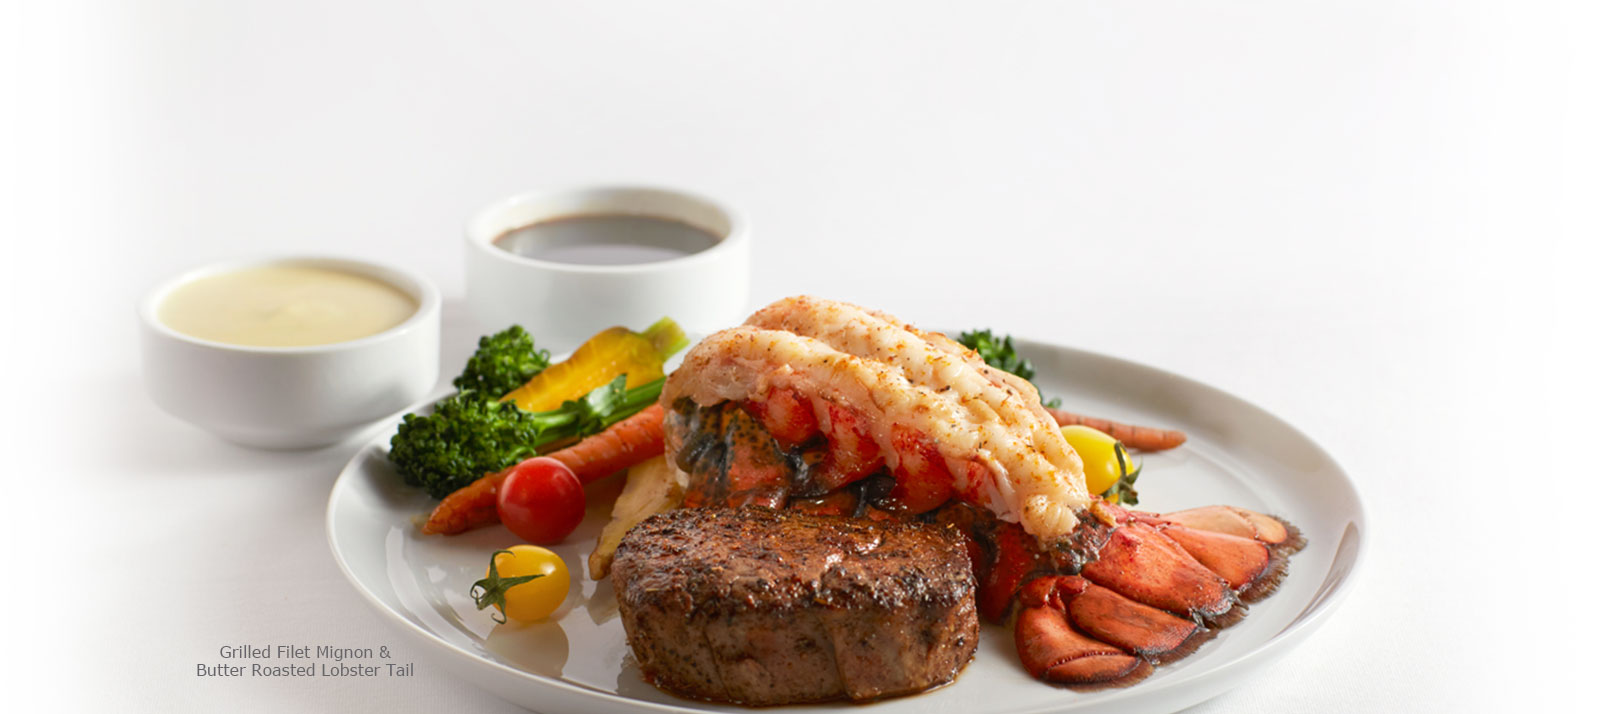 Grilled Filet Mignon & Butter Roasted Lobster Tail